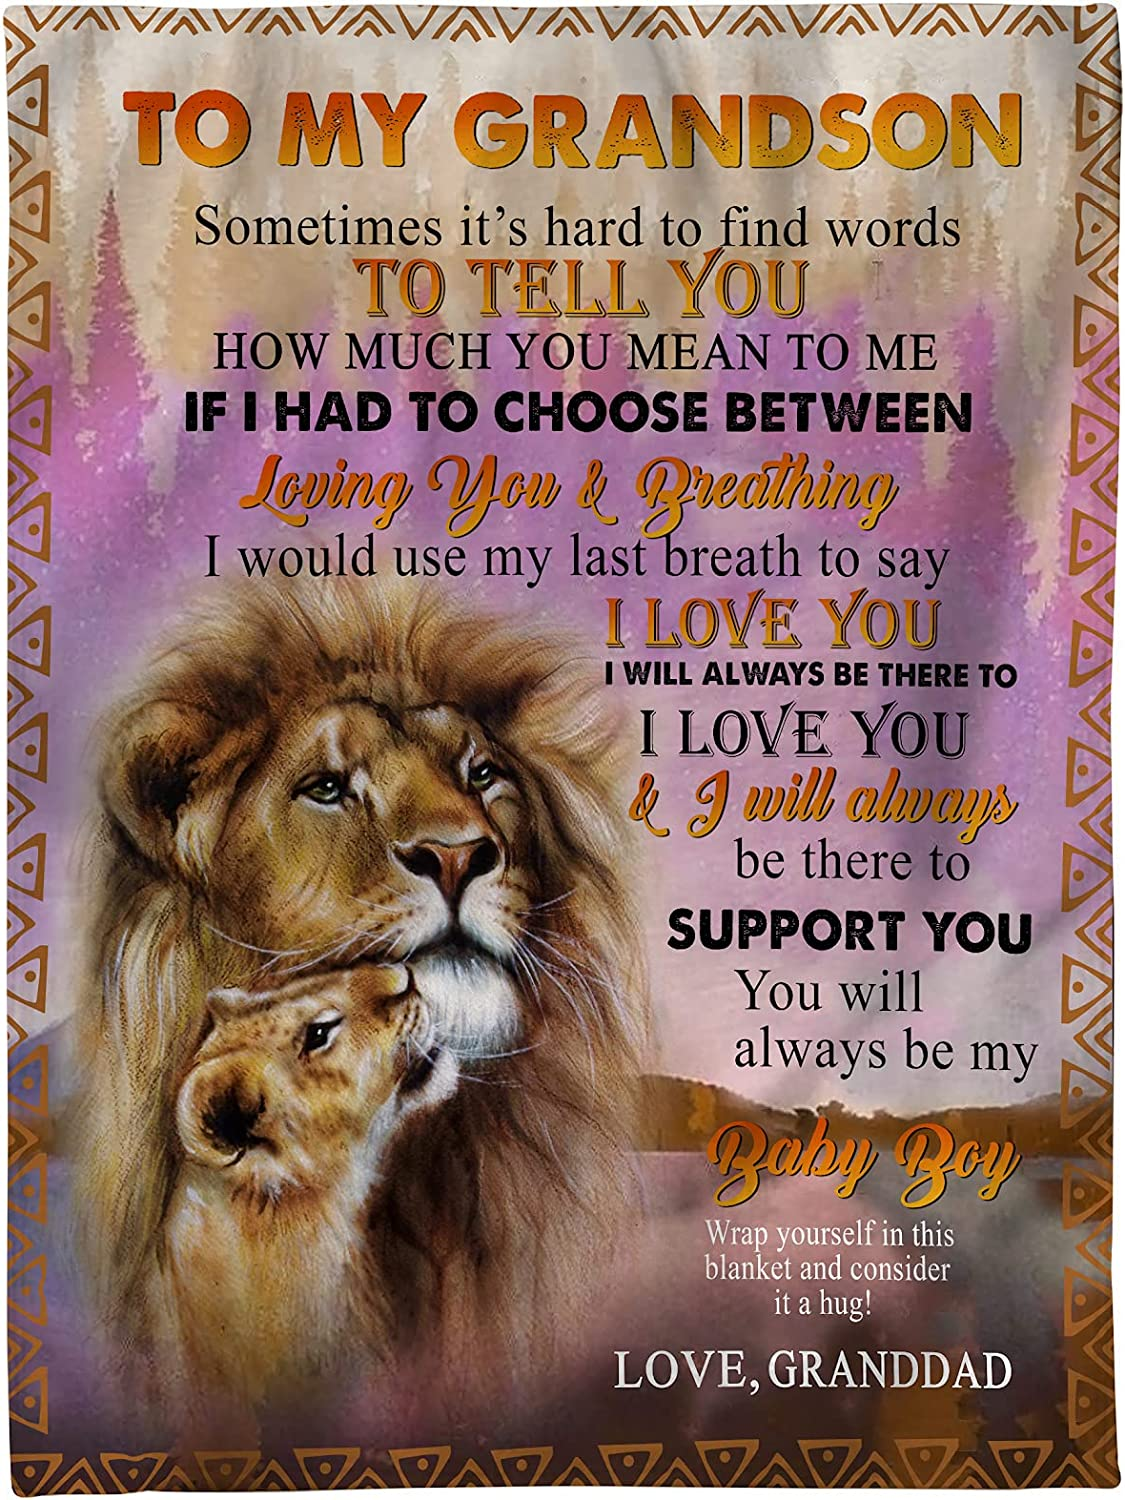 Safety and trust Personalized Blanket-to My Grandson Lion Special Campaign Support You Love Always